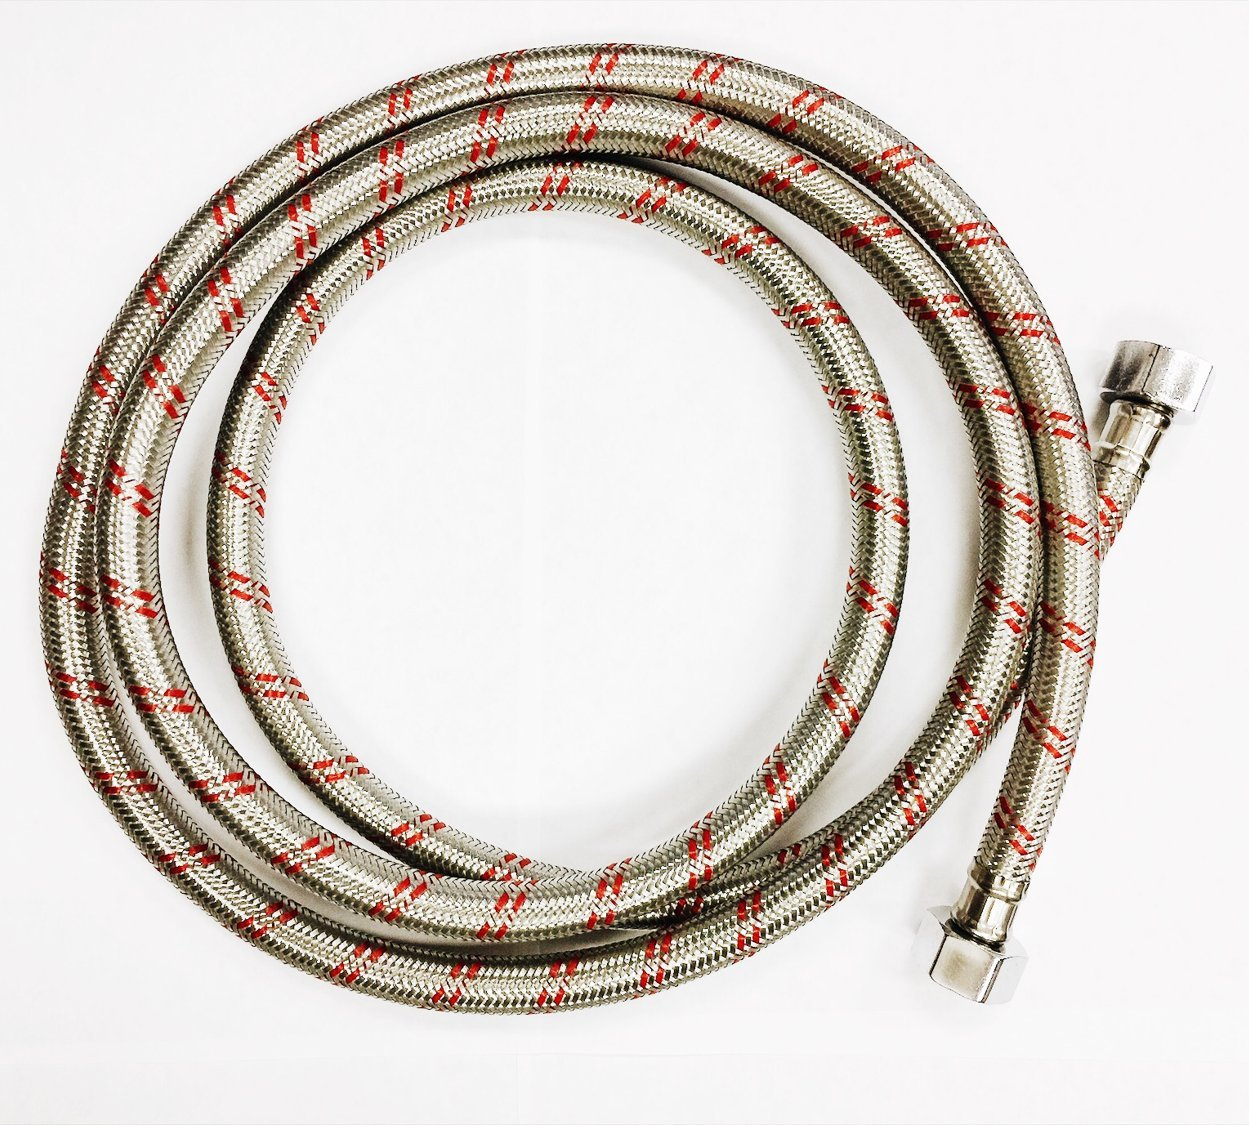 Faucet Connector Stainless Steel, Braided 1/2'' x 1/2'' x 6ft for Hot Water Supply